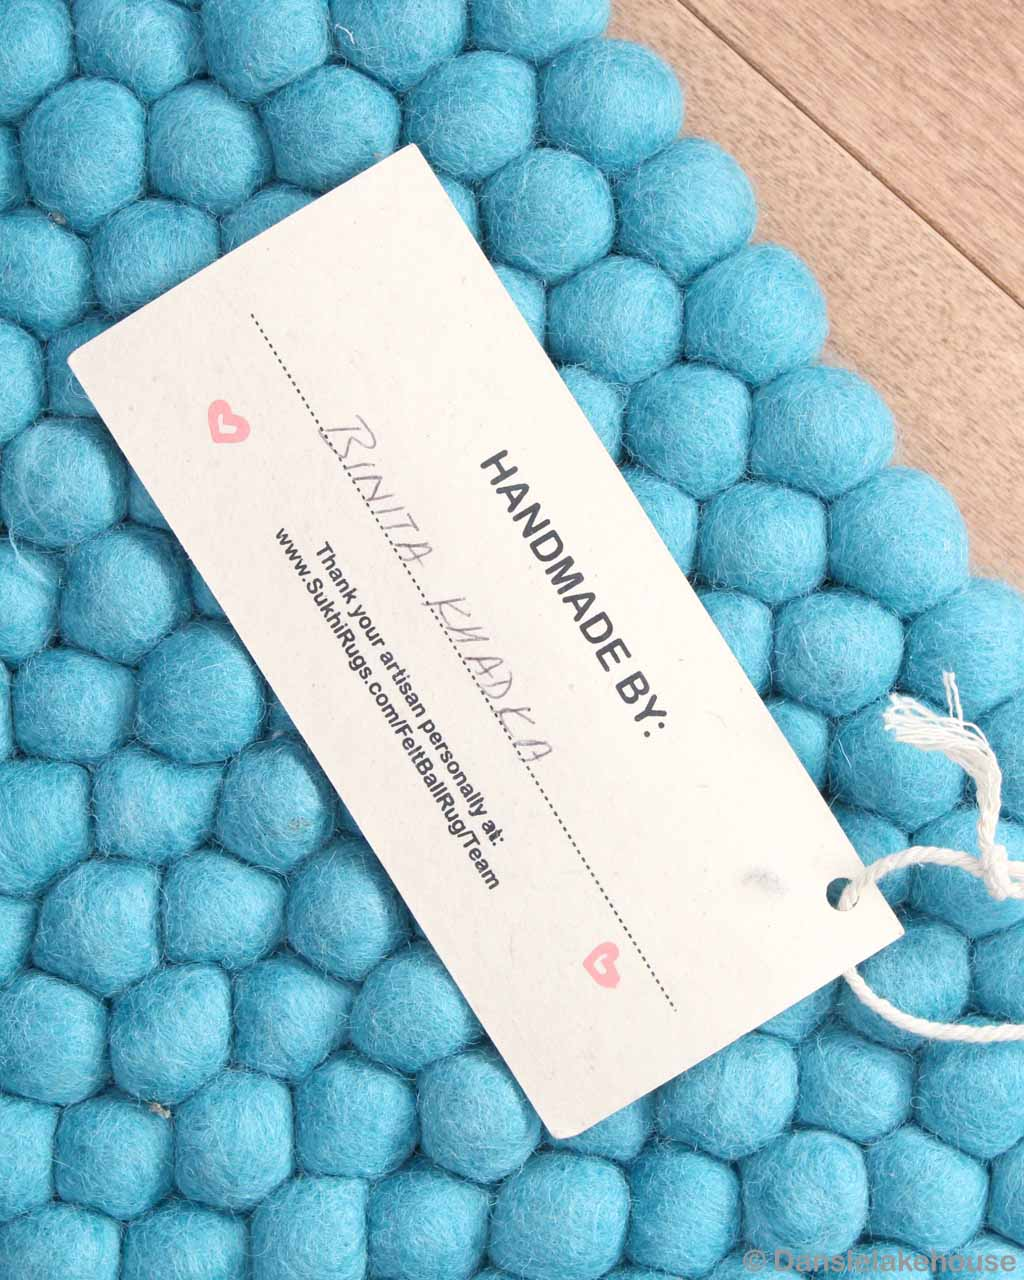 artist name tag from nepal cyan felt ball rugs